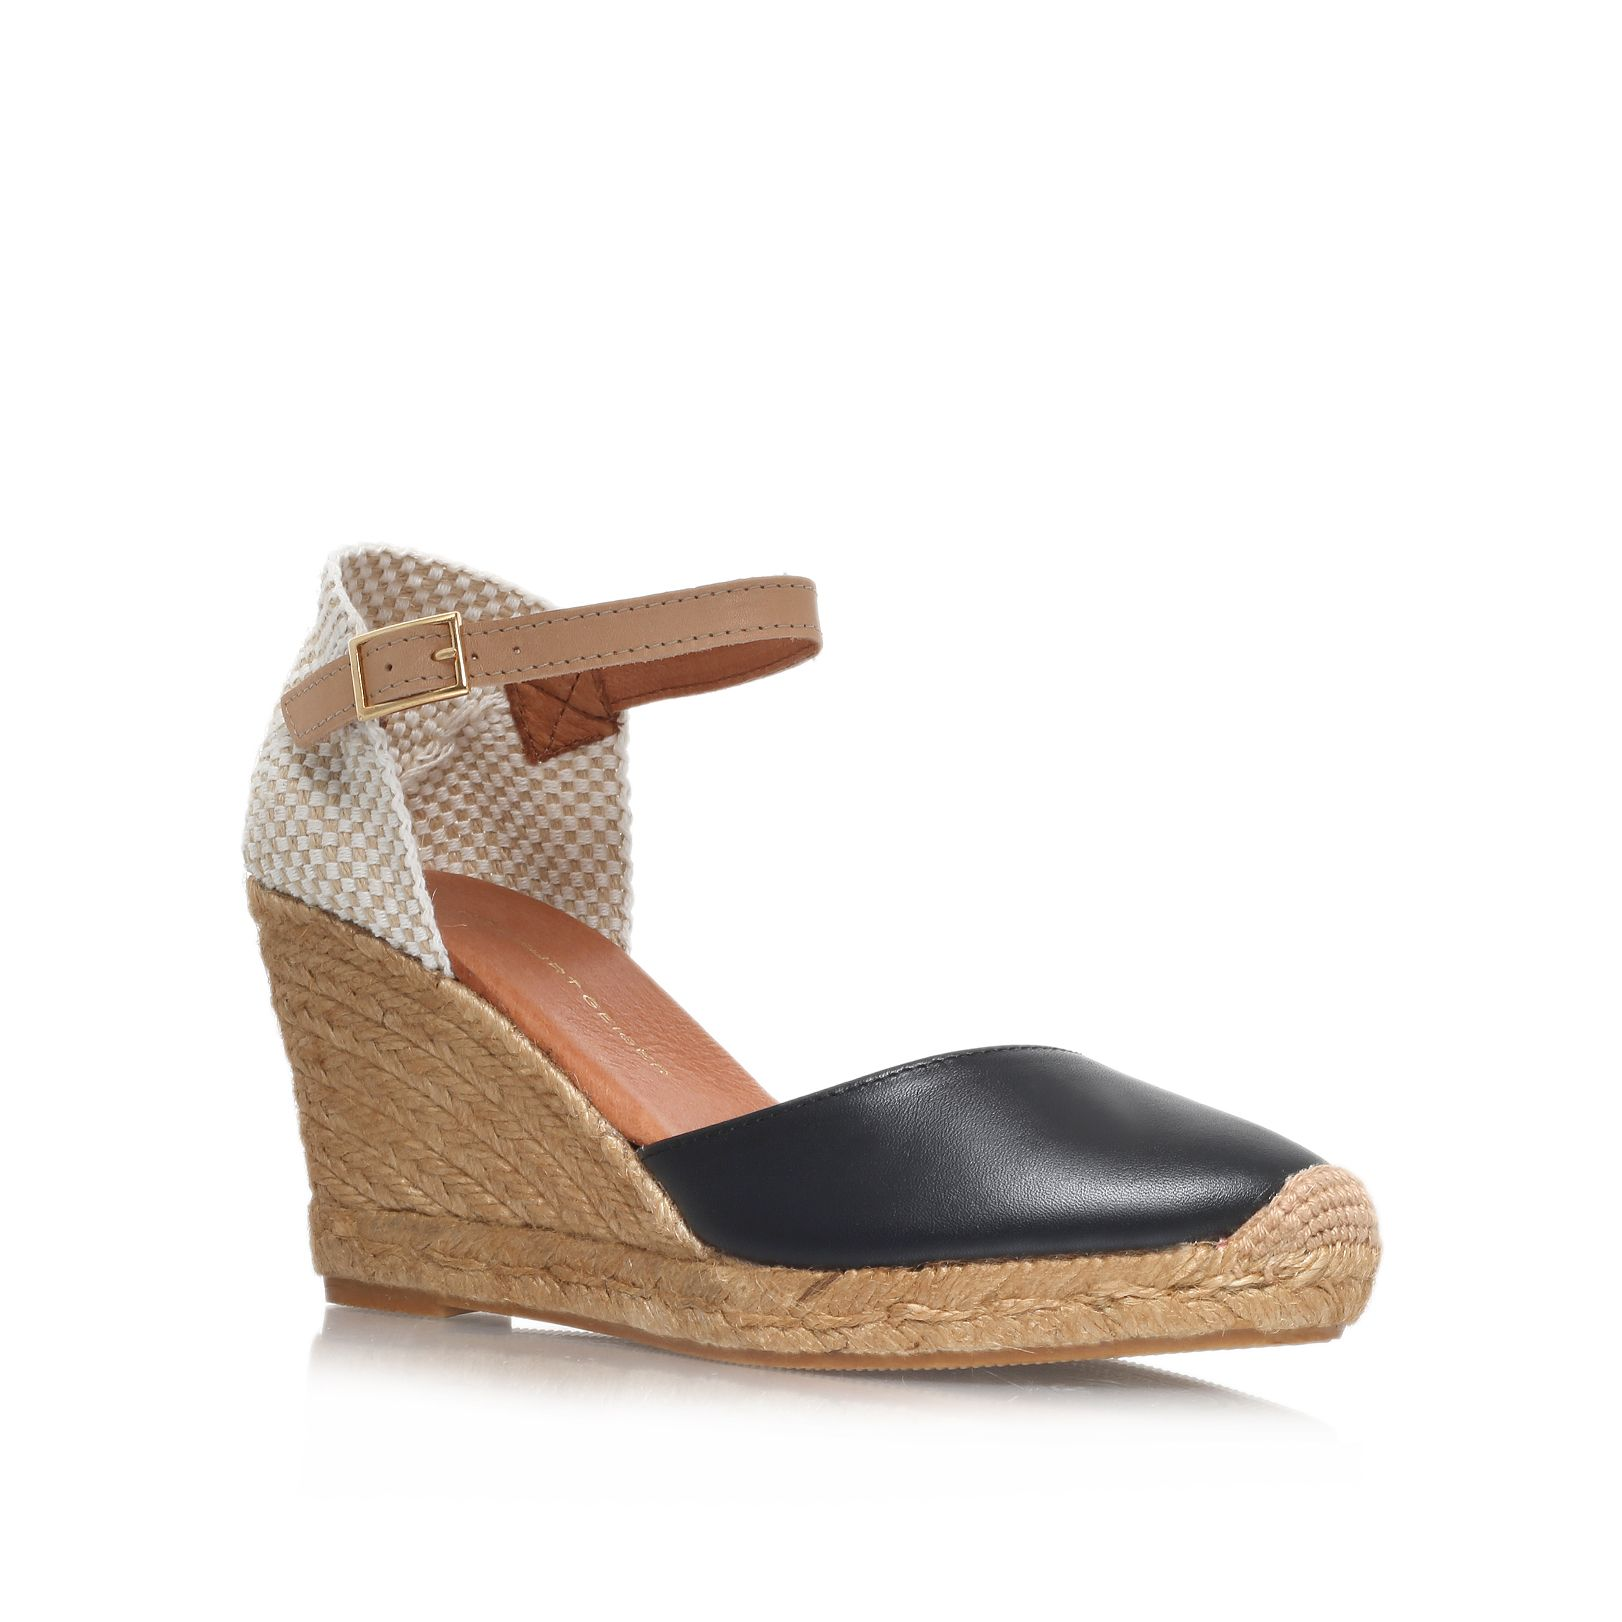 Monty high heel espadrille wedges